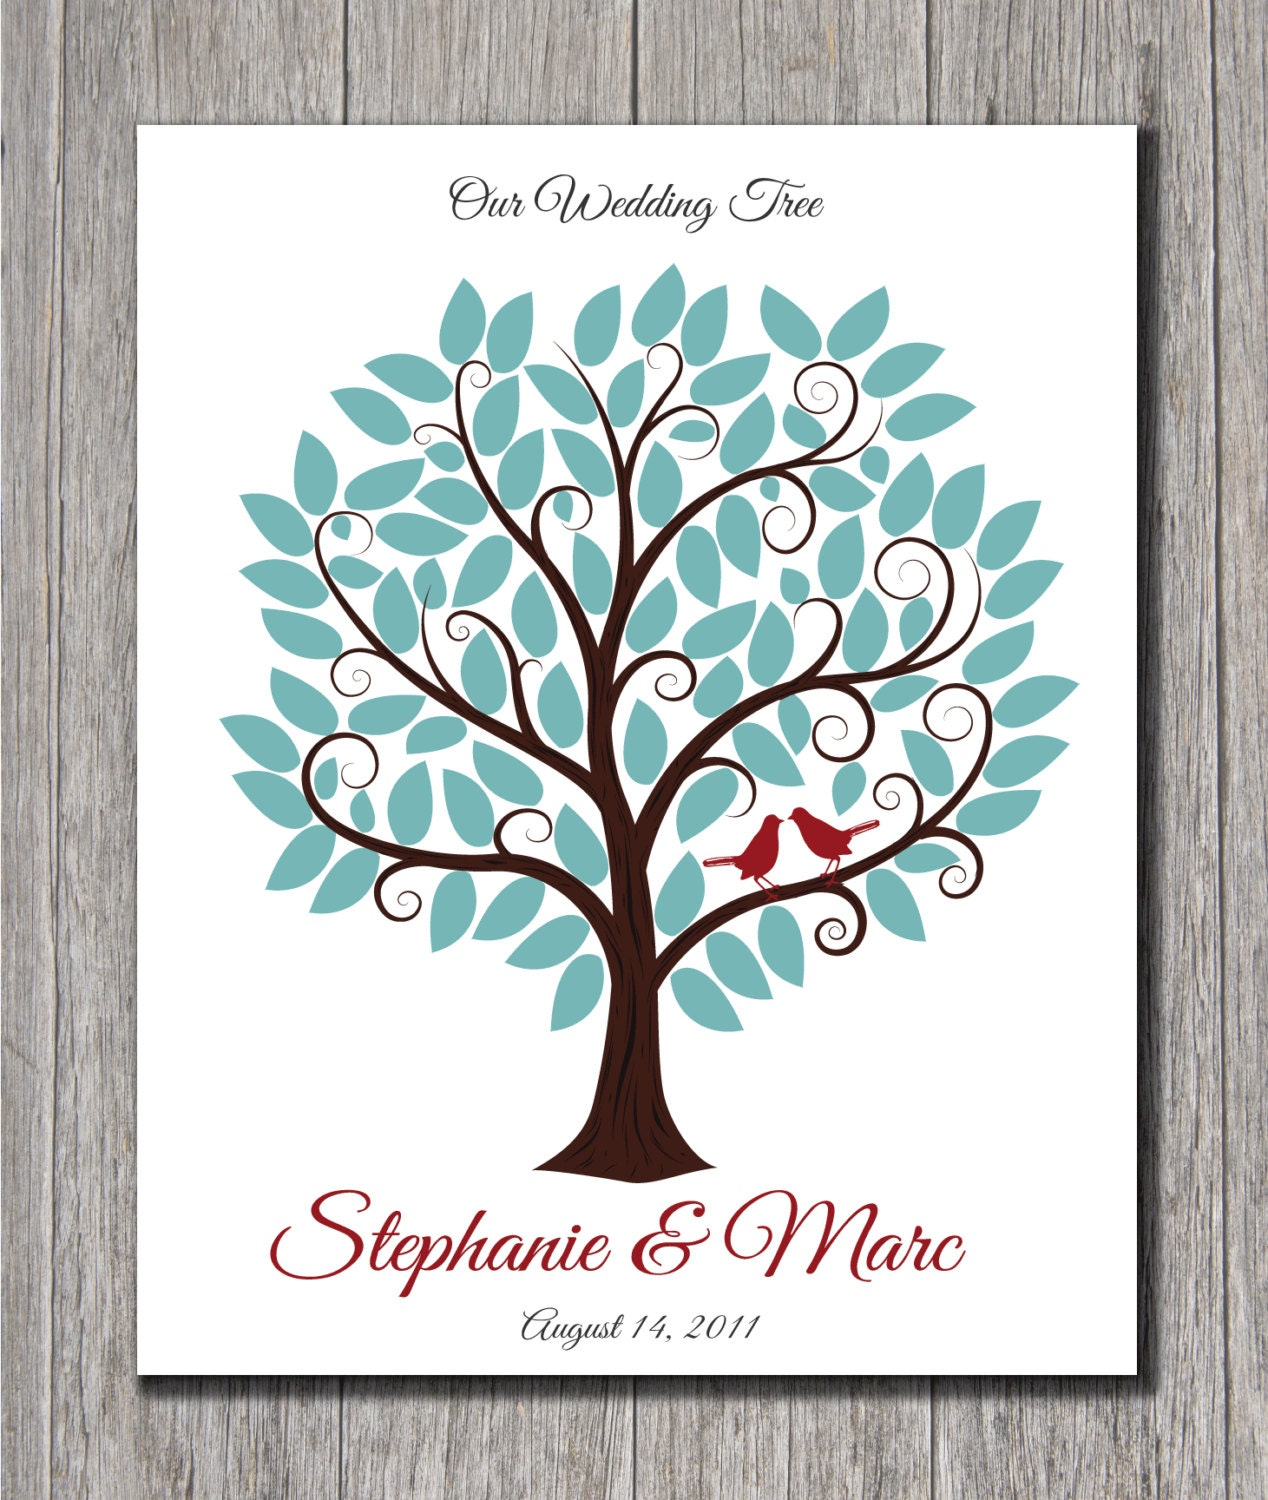 Wedding Guest Signing Tree: Wedding Guest Tree With Signature Leaves By MadeForKeepsShop